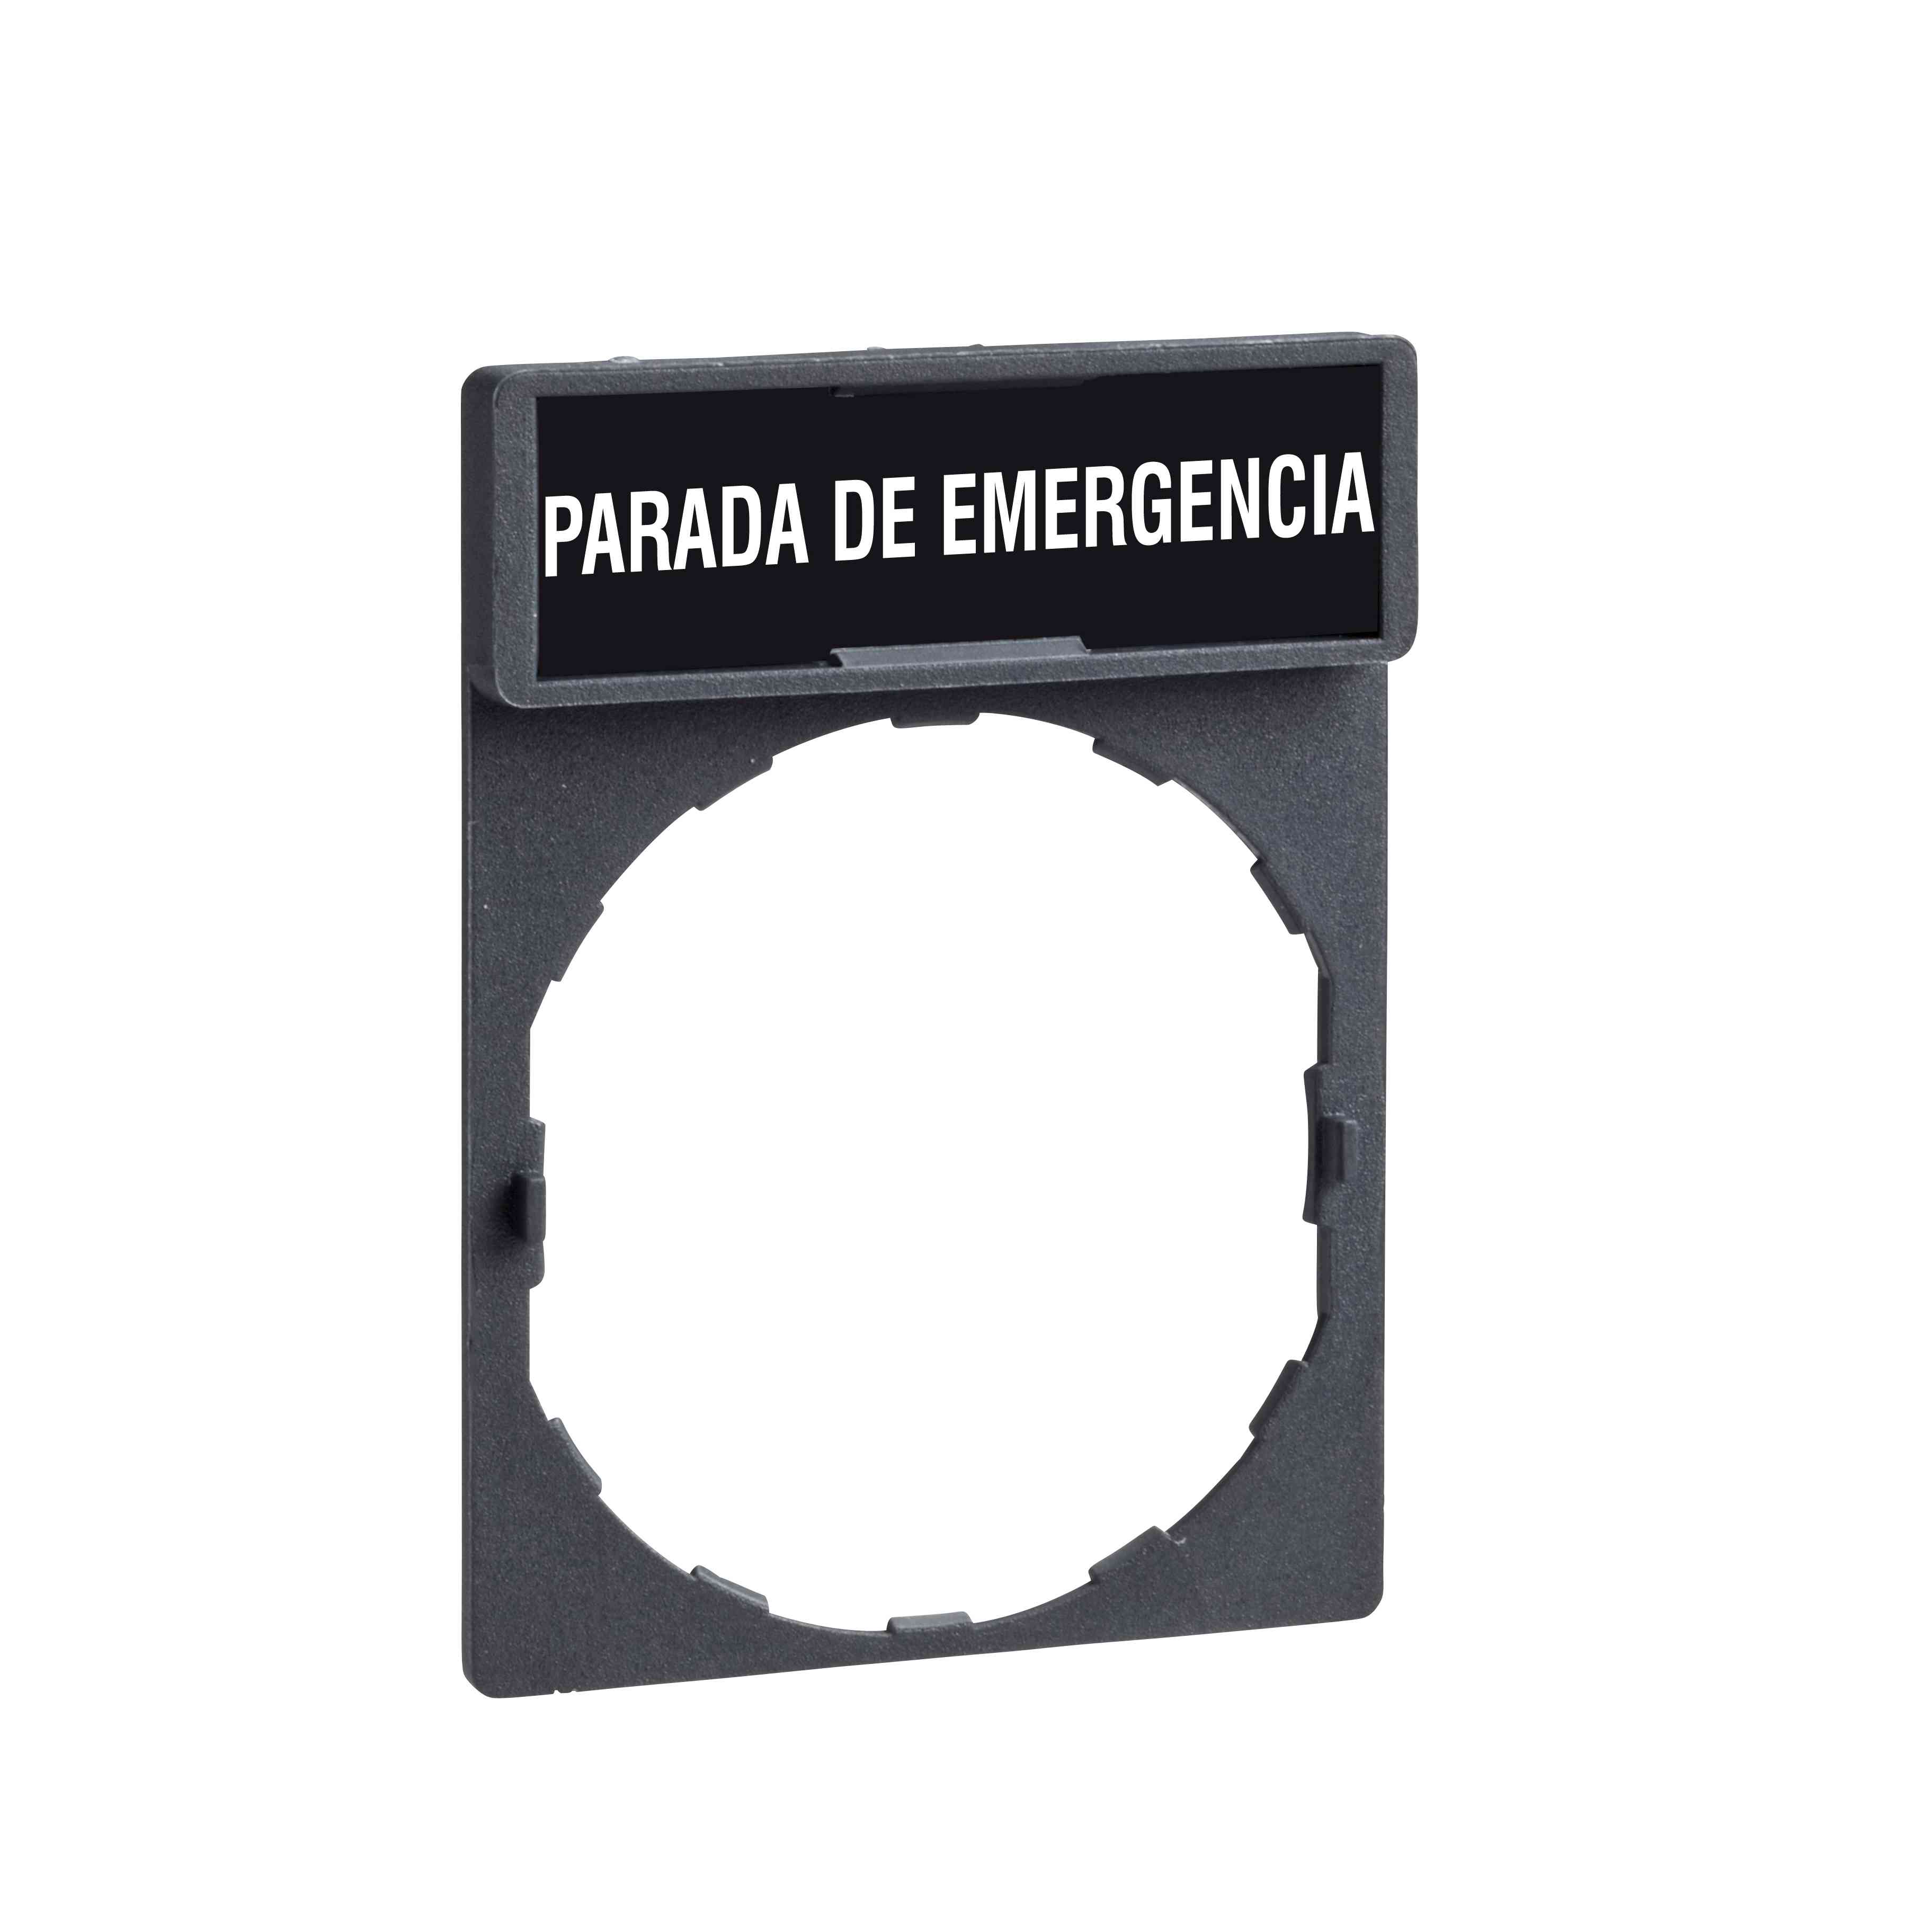 Nosilec legende 30 x 40 mm z legendo 8 x 27 mm z oznako PARADA DE EMERGENCIA